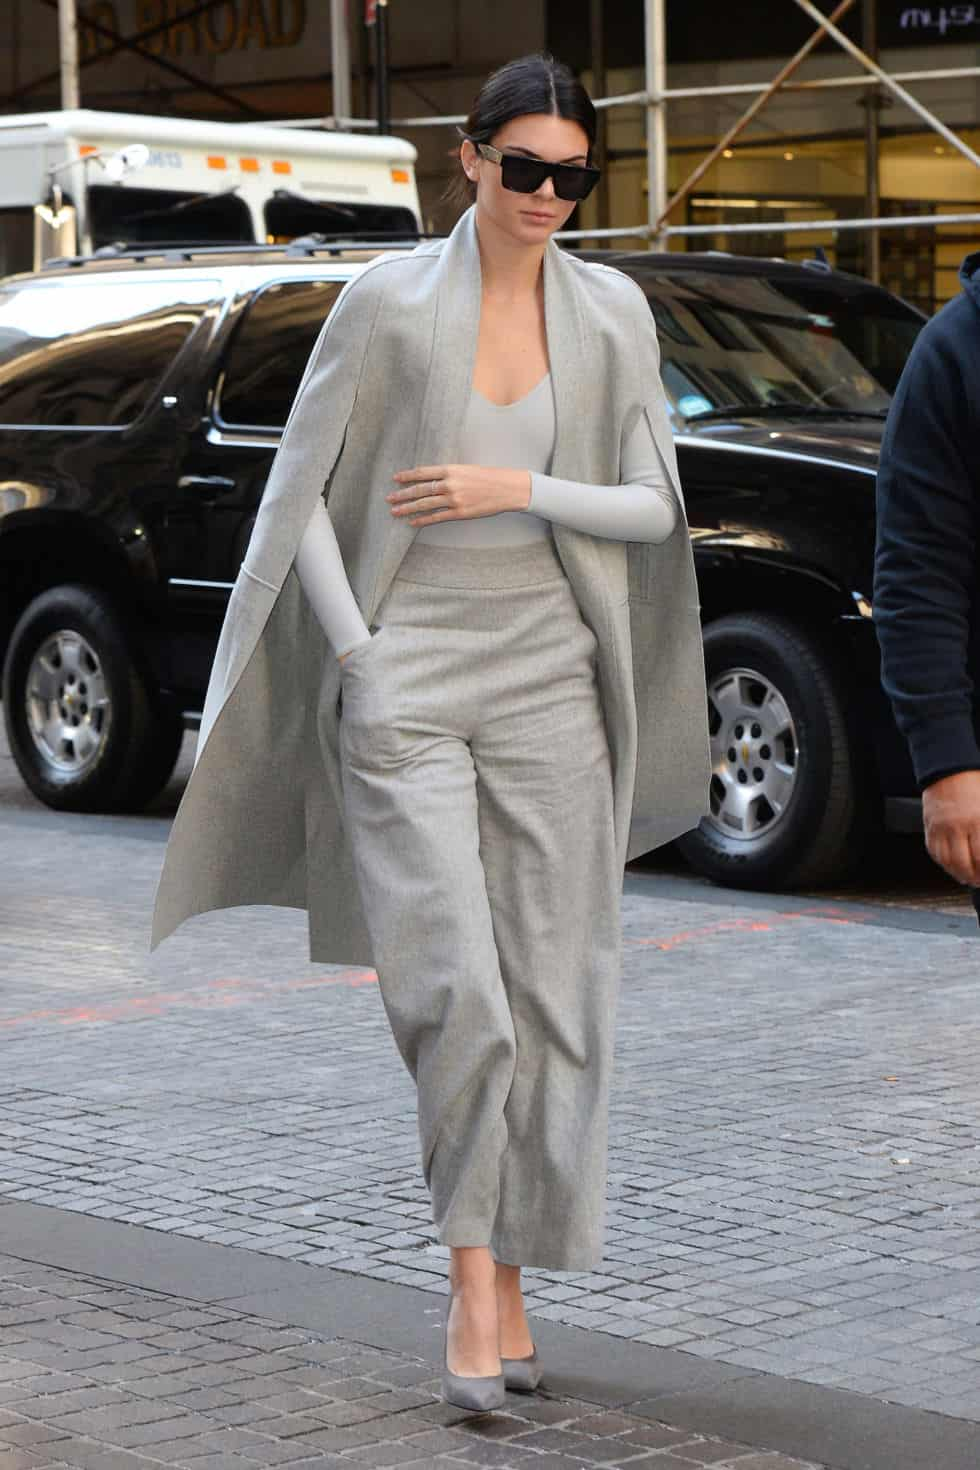 wonderful kendall jenner street outfit